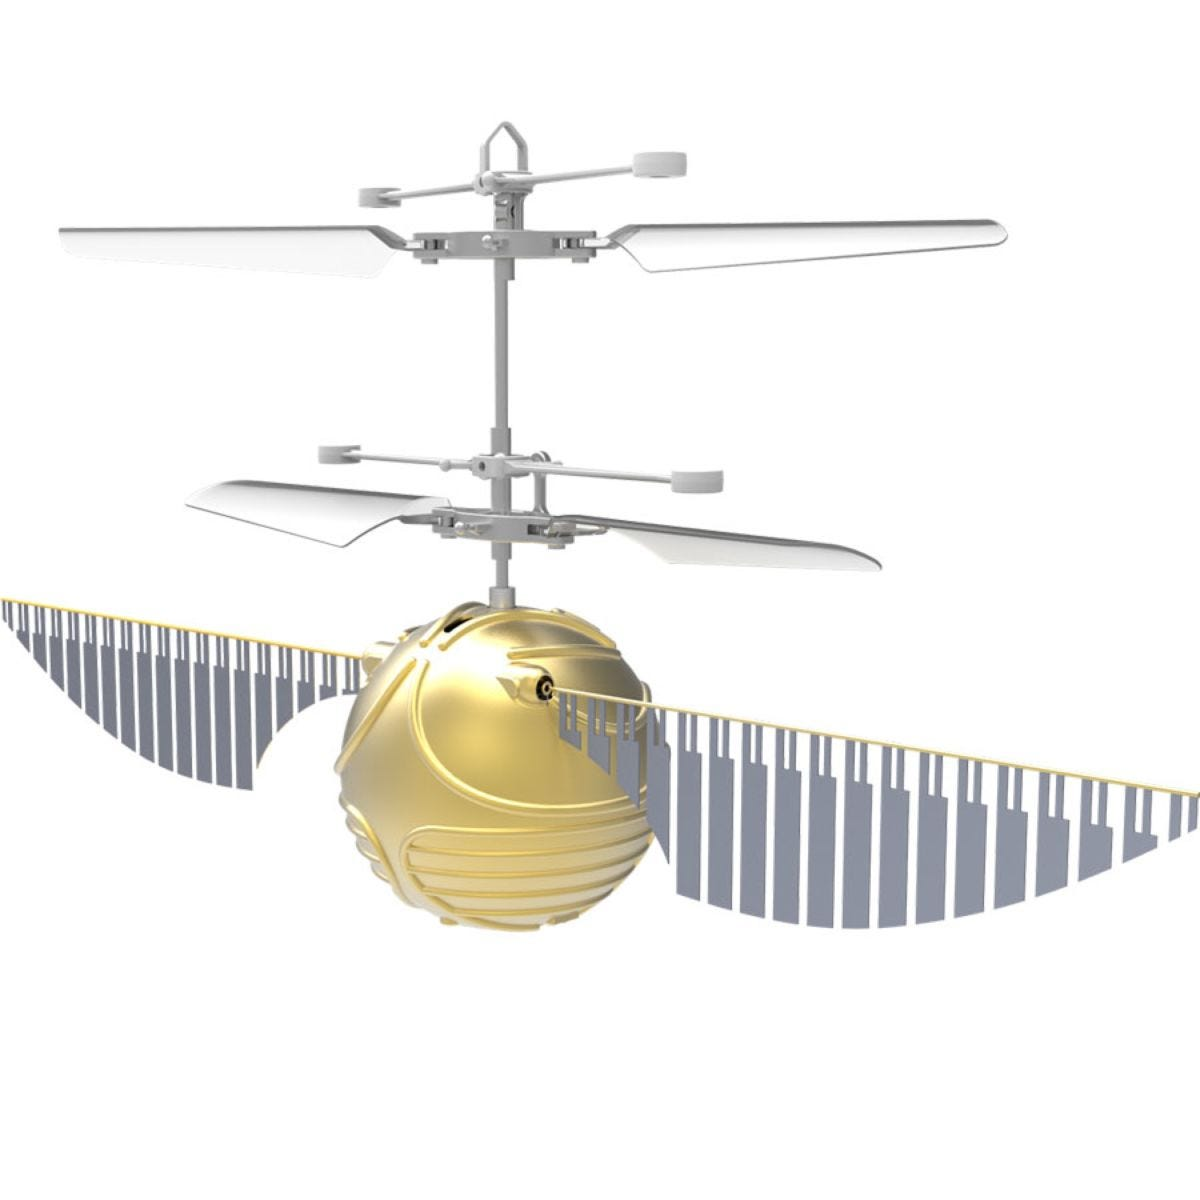 Wizarding World Harry Potter Golden Snitch Heliball Drone - Gold